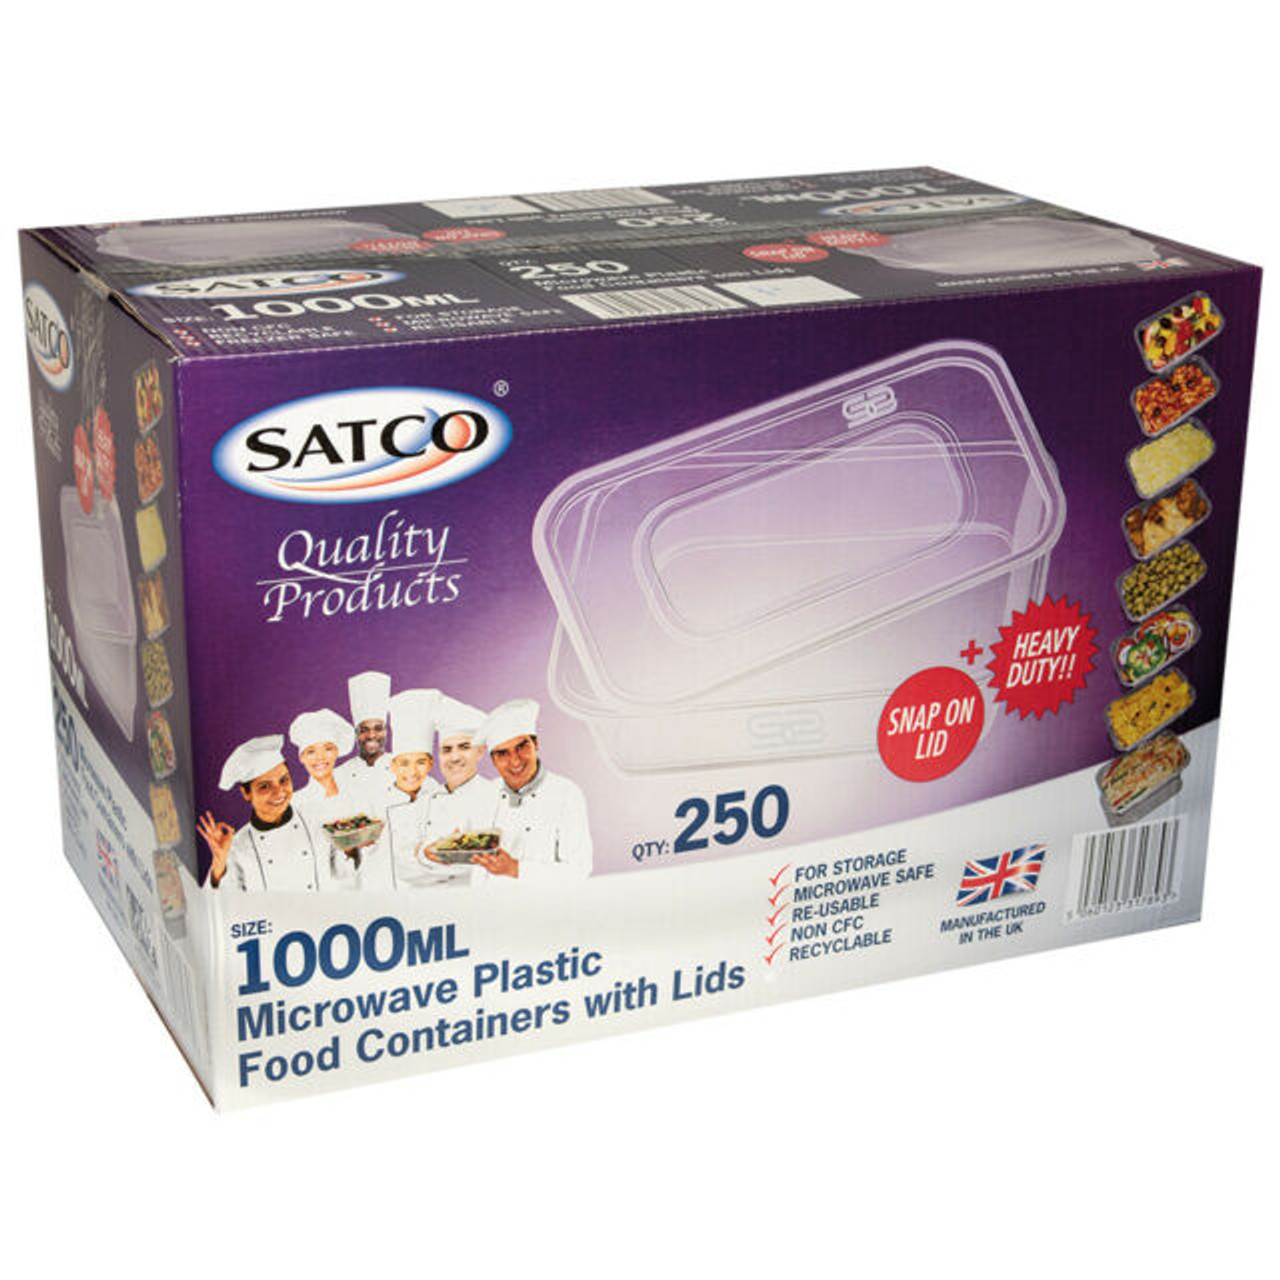 Satco 1000ml Rectangular Plastic Containers & Lids Pack Size 250